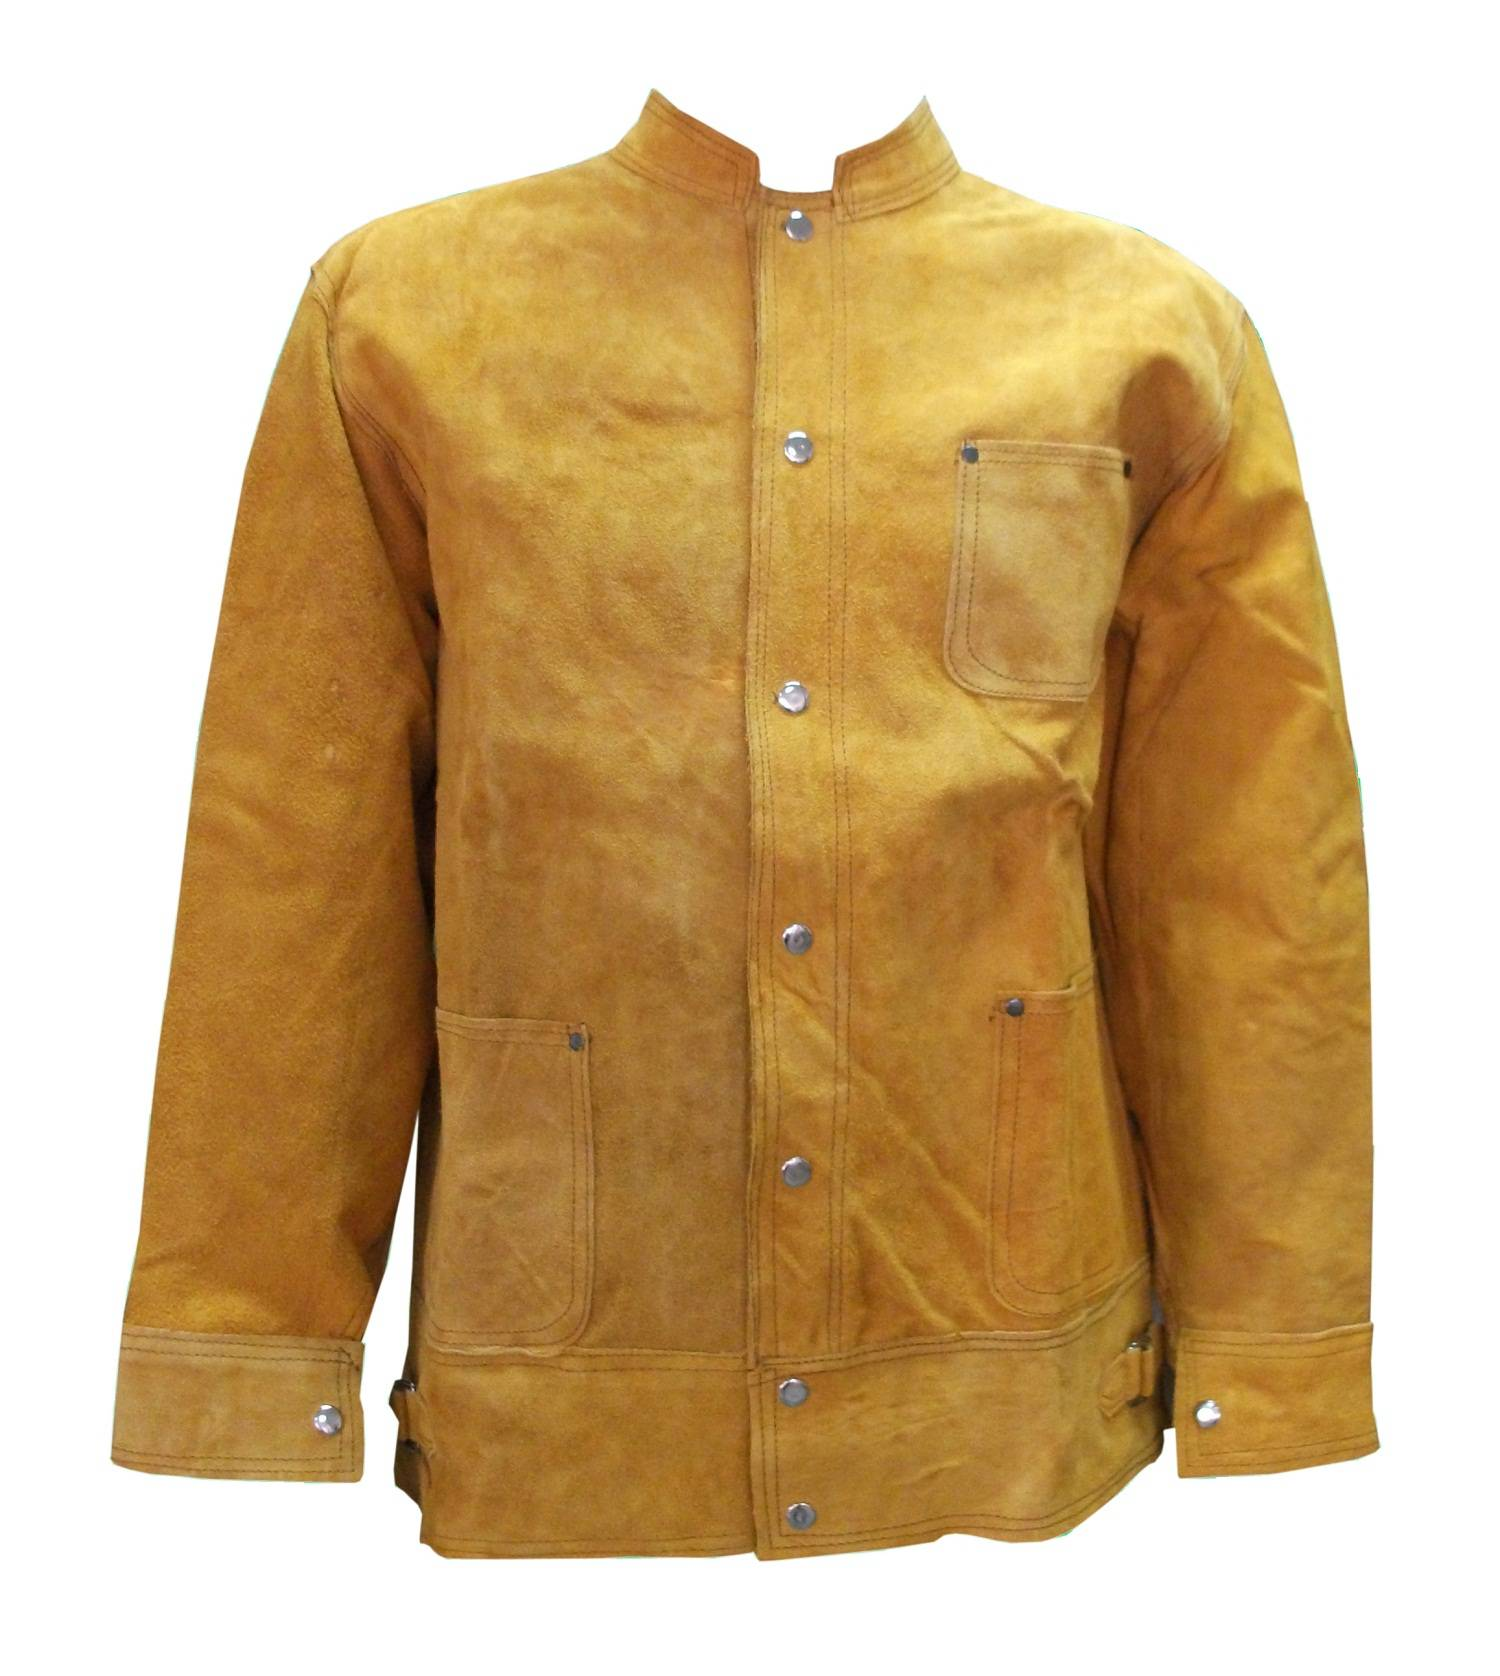 welding clothes